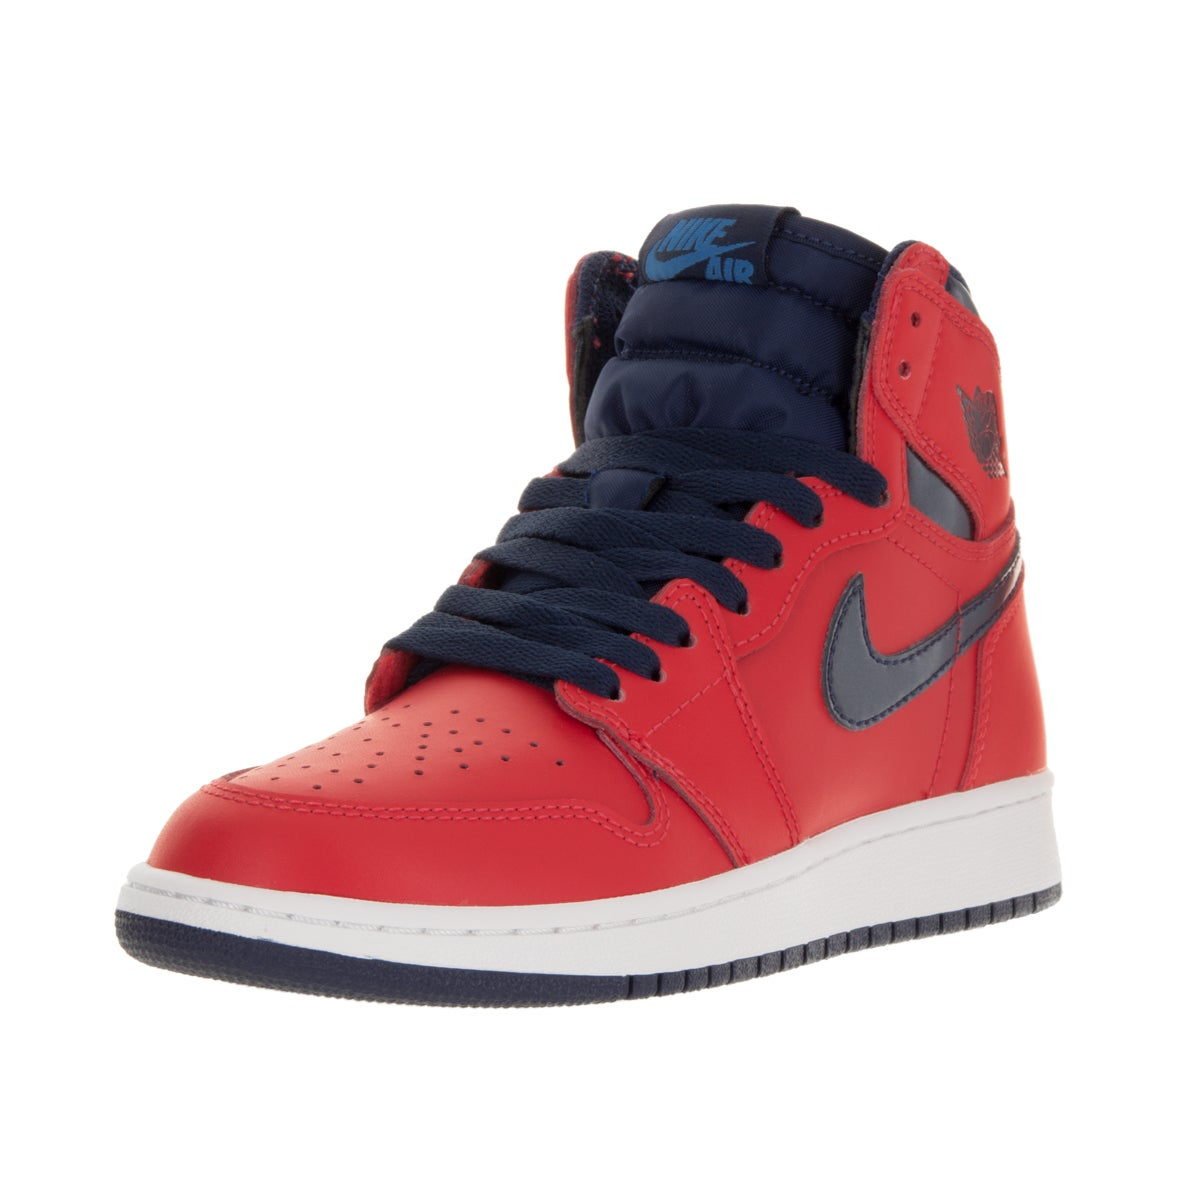 2f3ec659b0c8 Shop Nike Jordan Kids  Air Jordan 1 Retro High Red and Navy Blue Leather  Basketball Shoes - Ships To Canada - Overstock.ca - 13394587